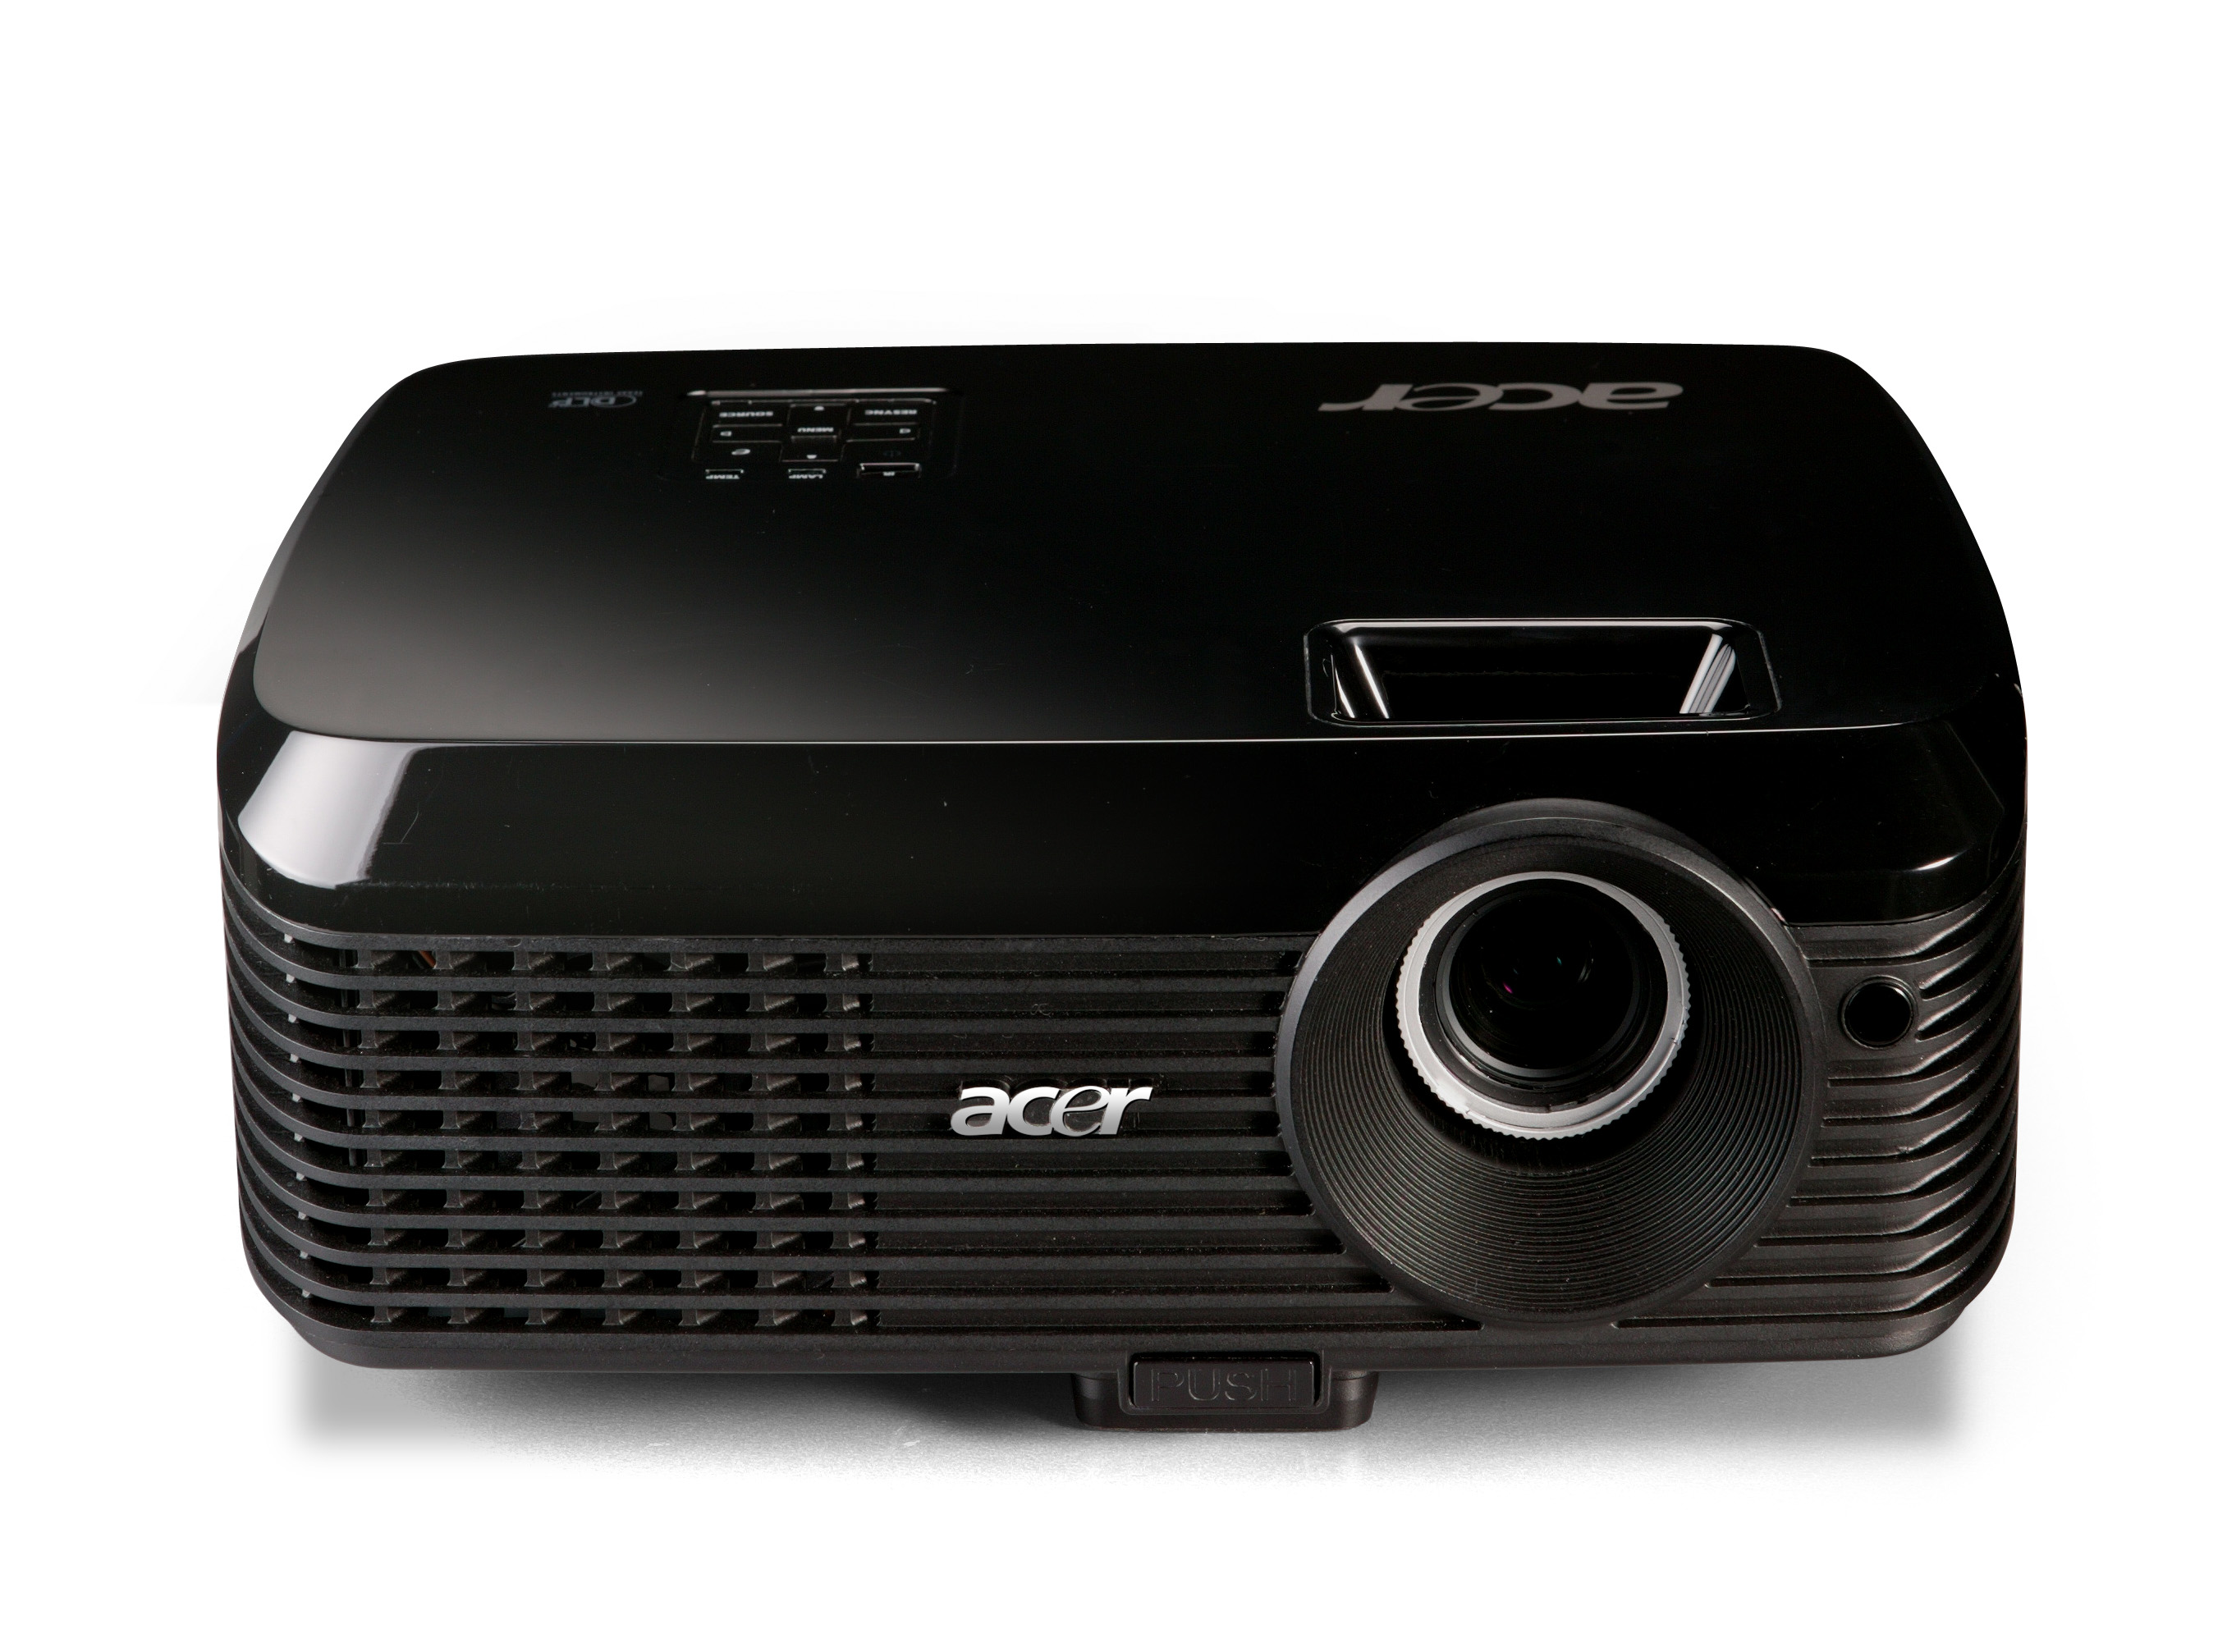 Acer X1130 Projector Lamp